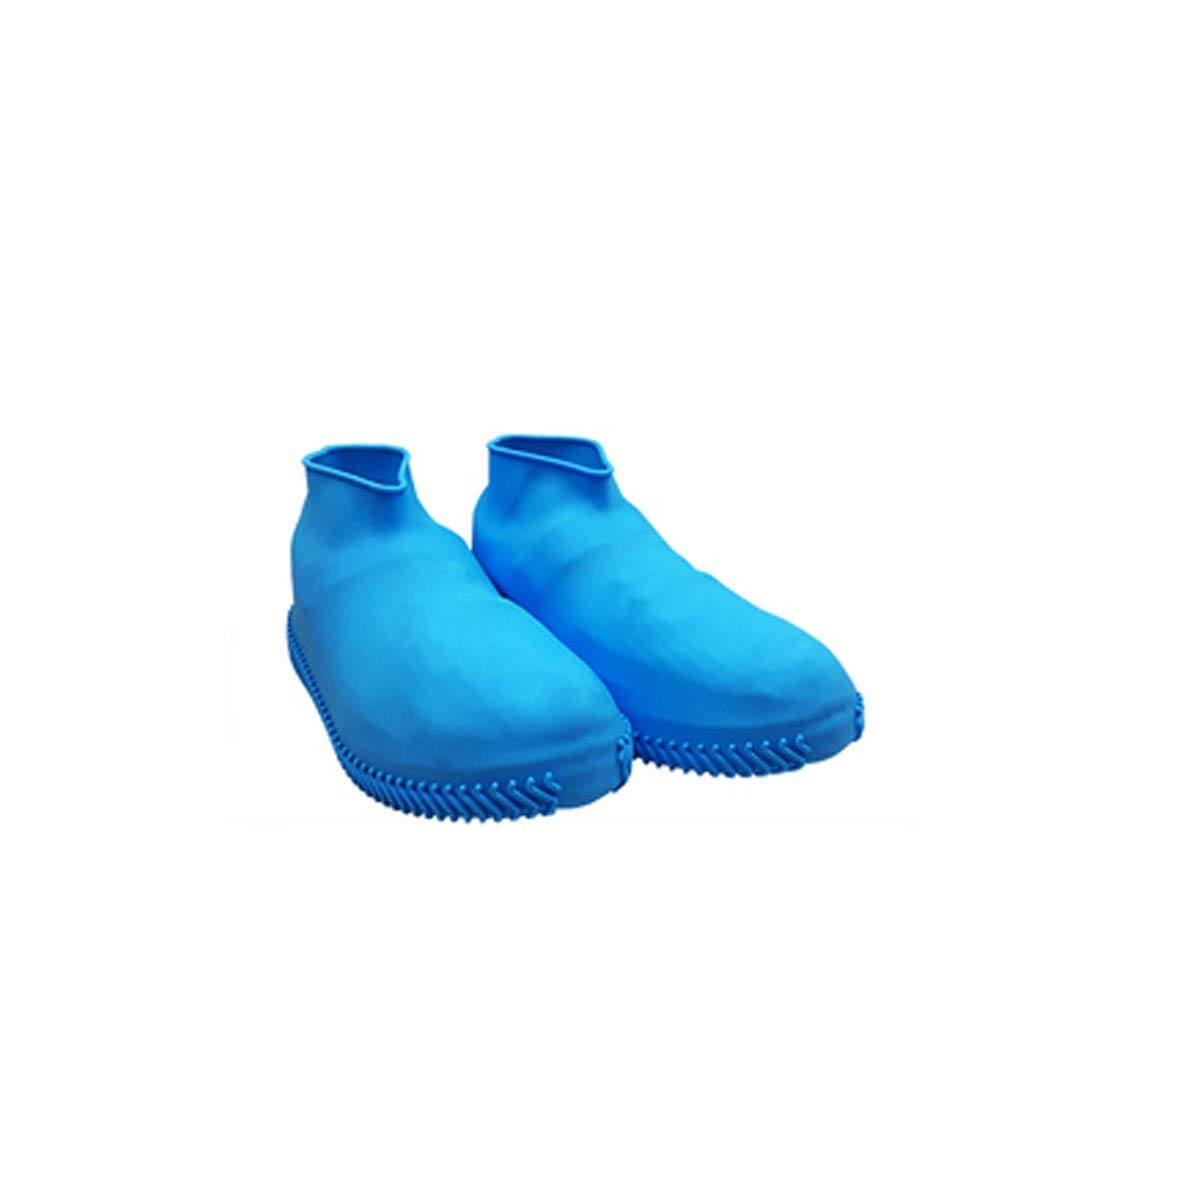 WUHUIZHENJINGXIAOBU Waterproof Shoe Cover, rain-Proof Water-Like Rubber wear-Resistant Shoe Bag, Free to Choose from a Variety of Colors Shoe Covers That can be Worn on Rainy Days, (Color : Blue-M)